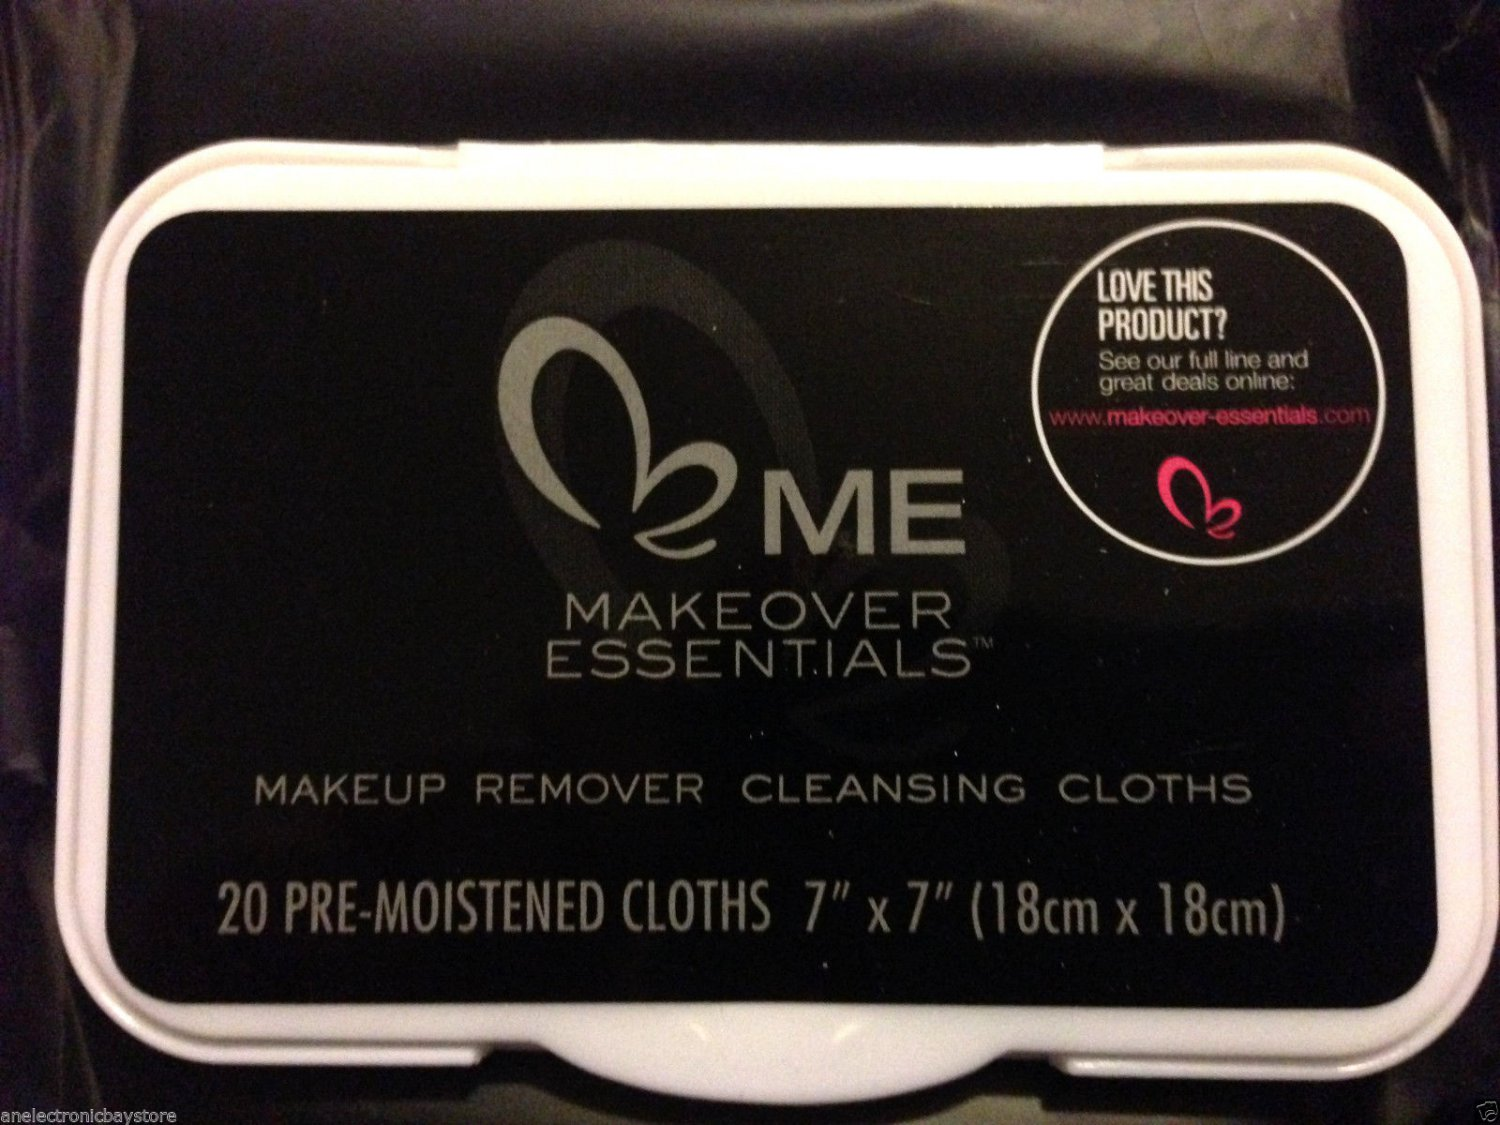 Makeover Essentials Makeup Remover Cleansing Cloths